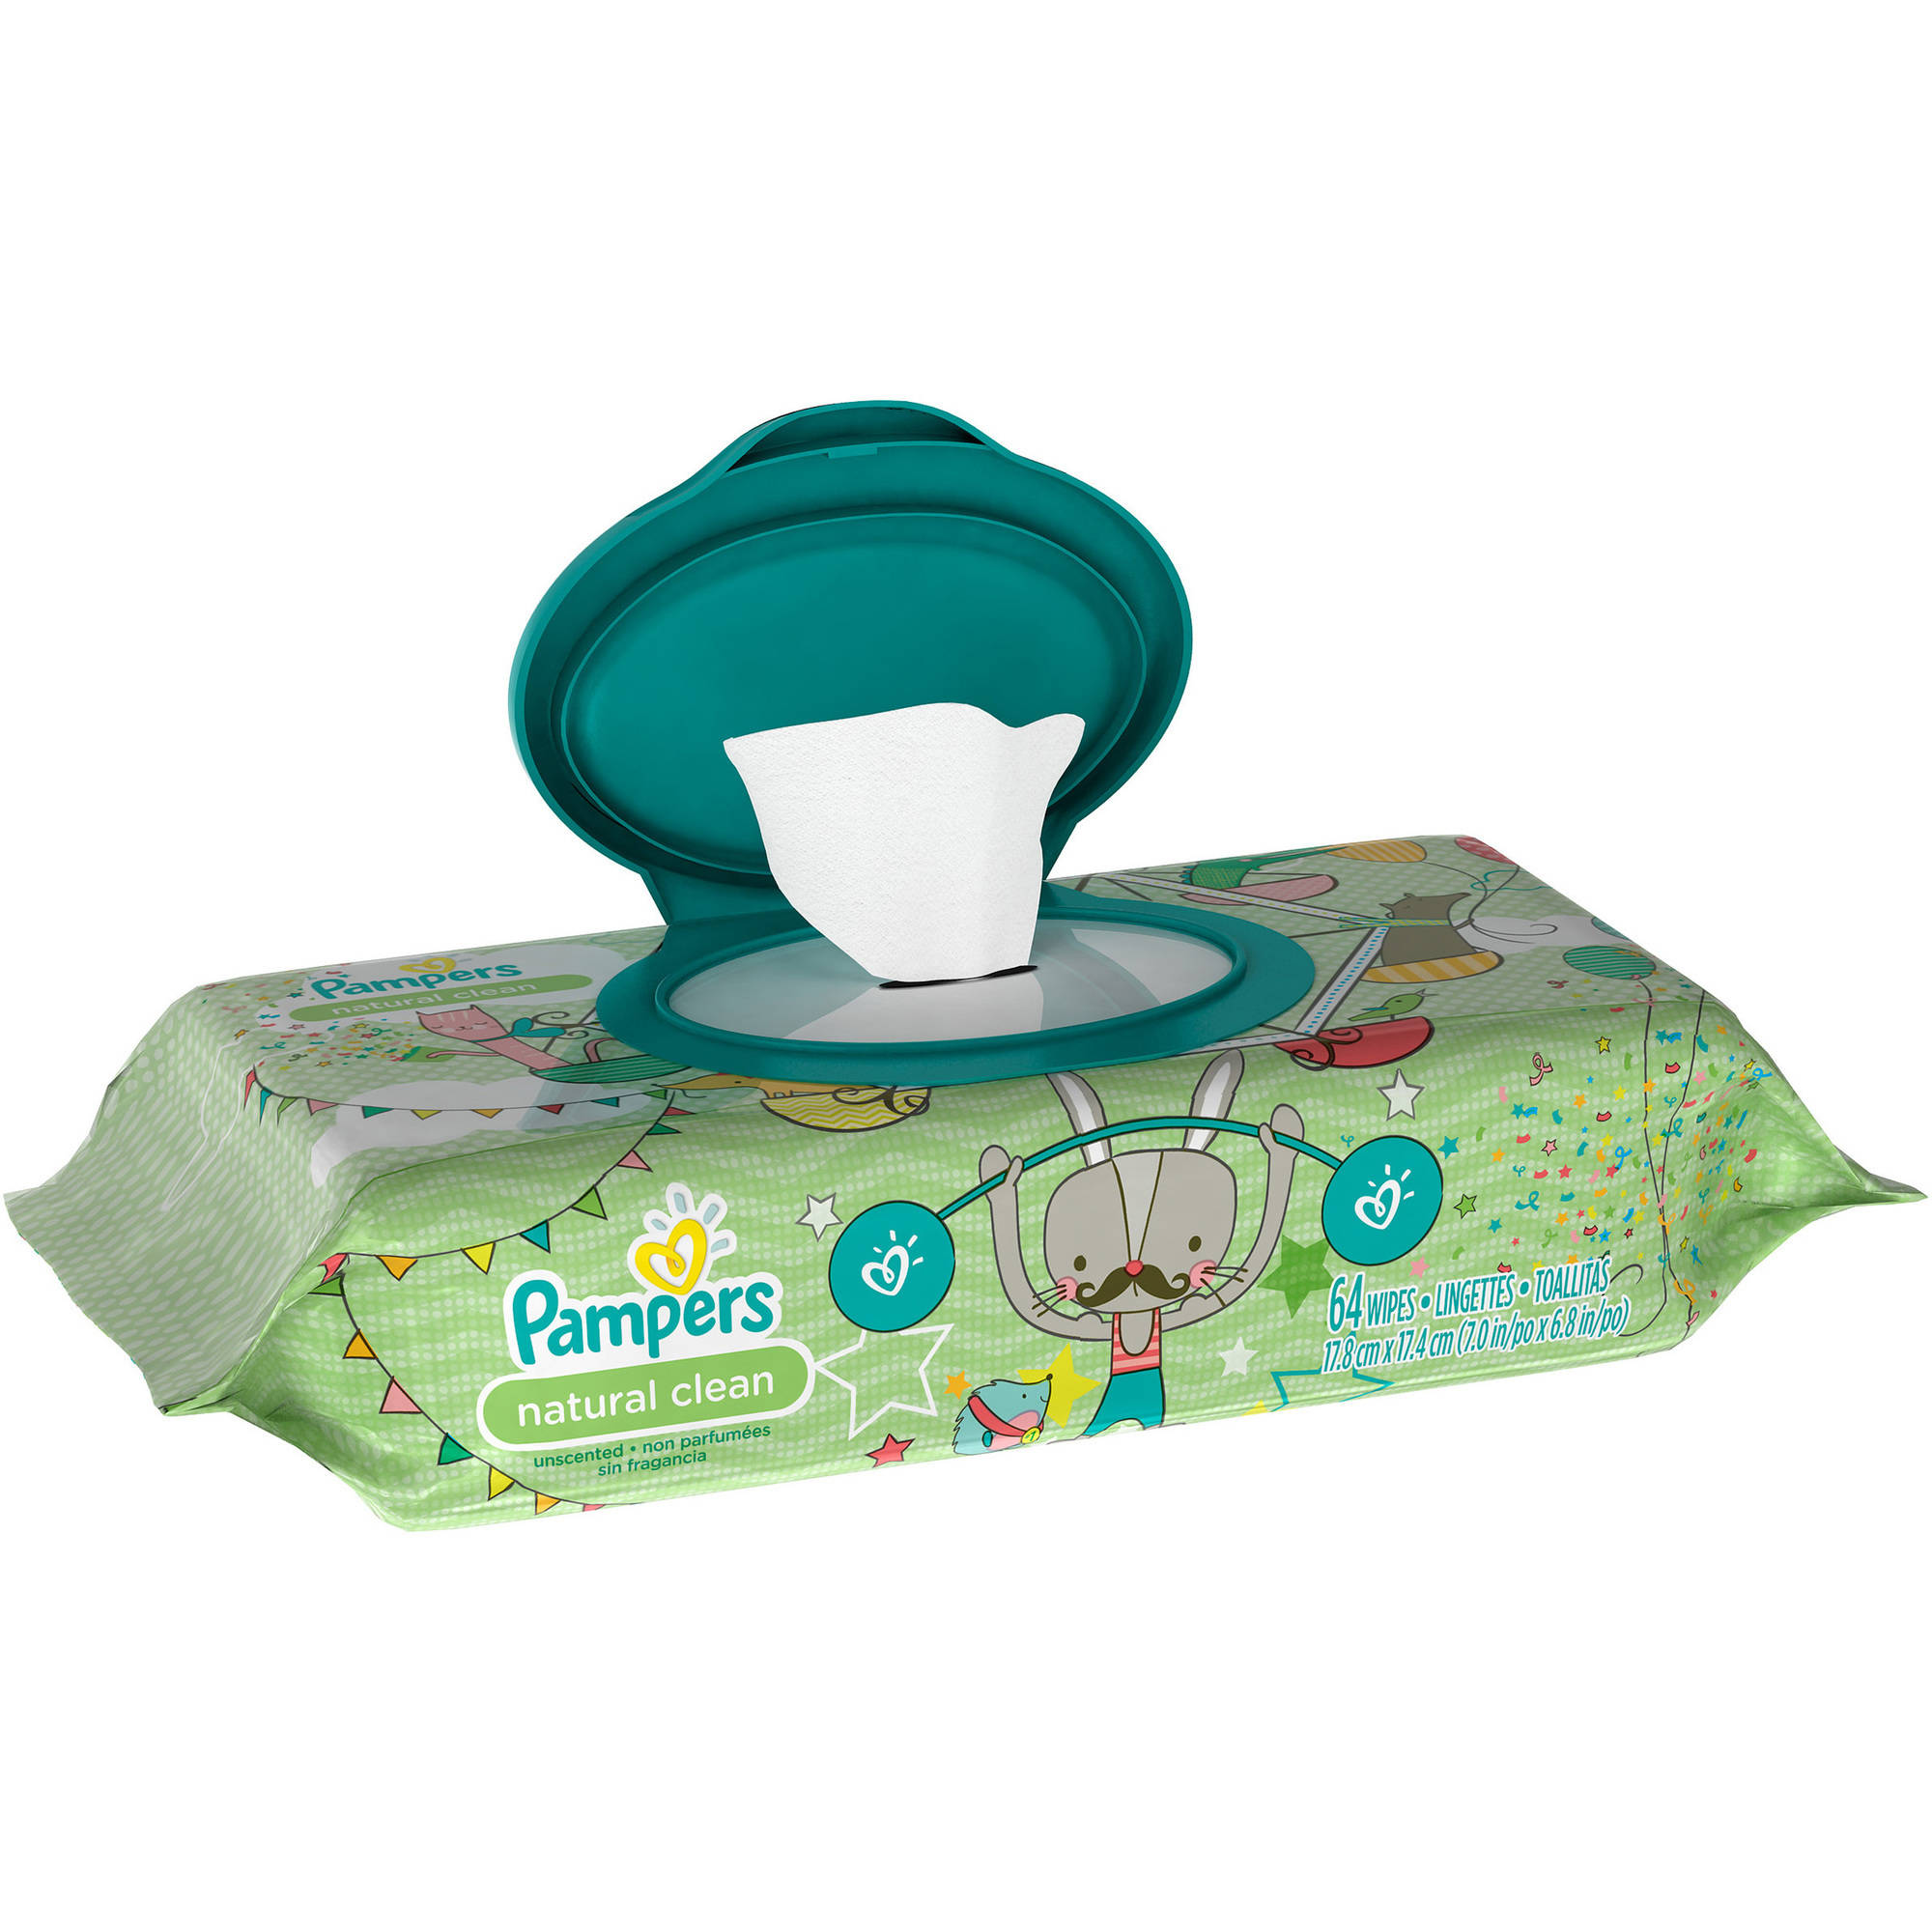 Pampers Natural Clean Baby Wipes Refills, 64 sheets